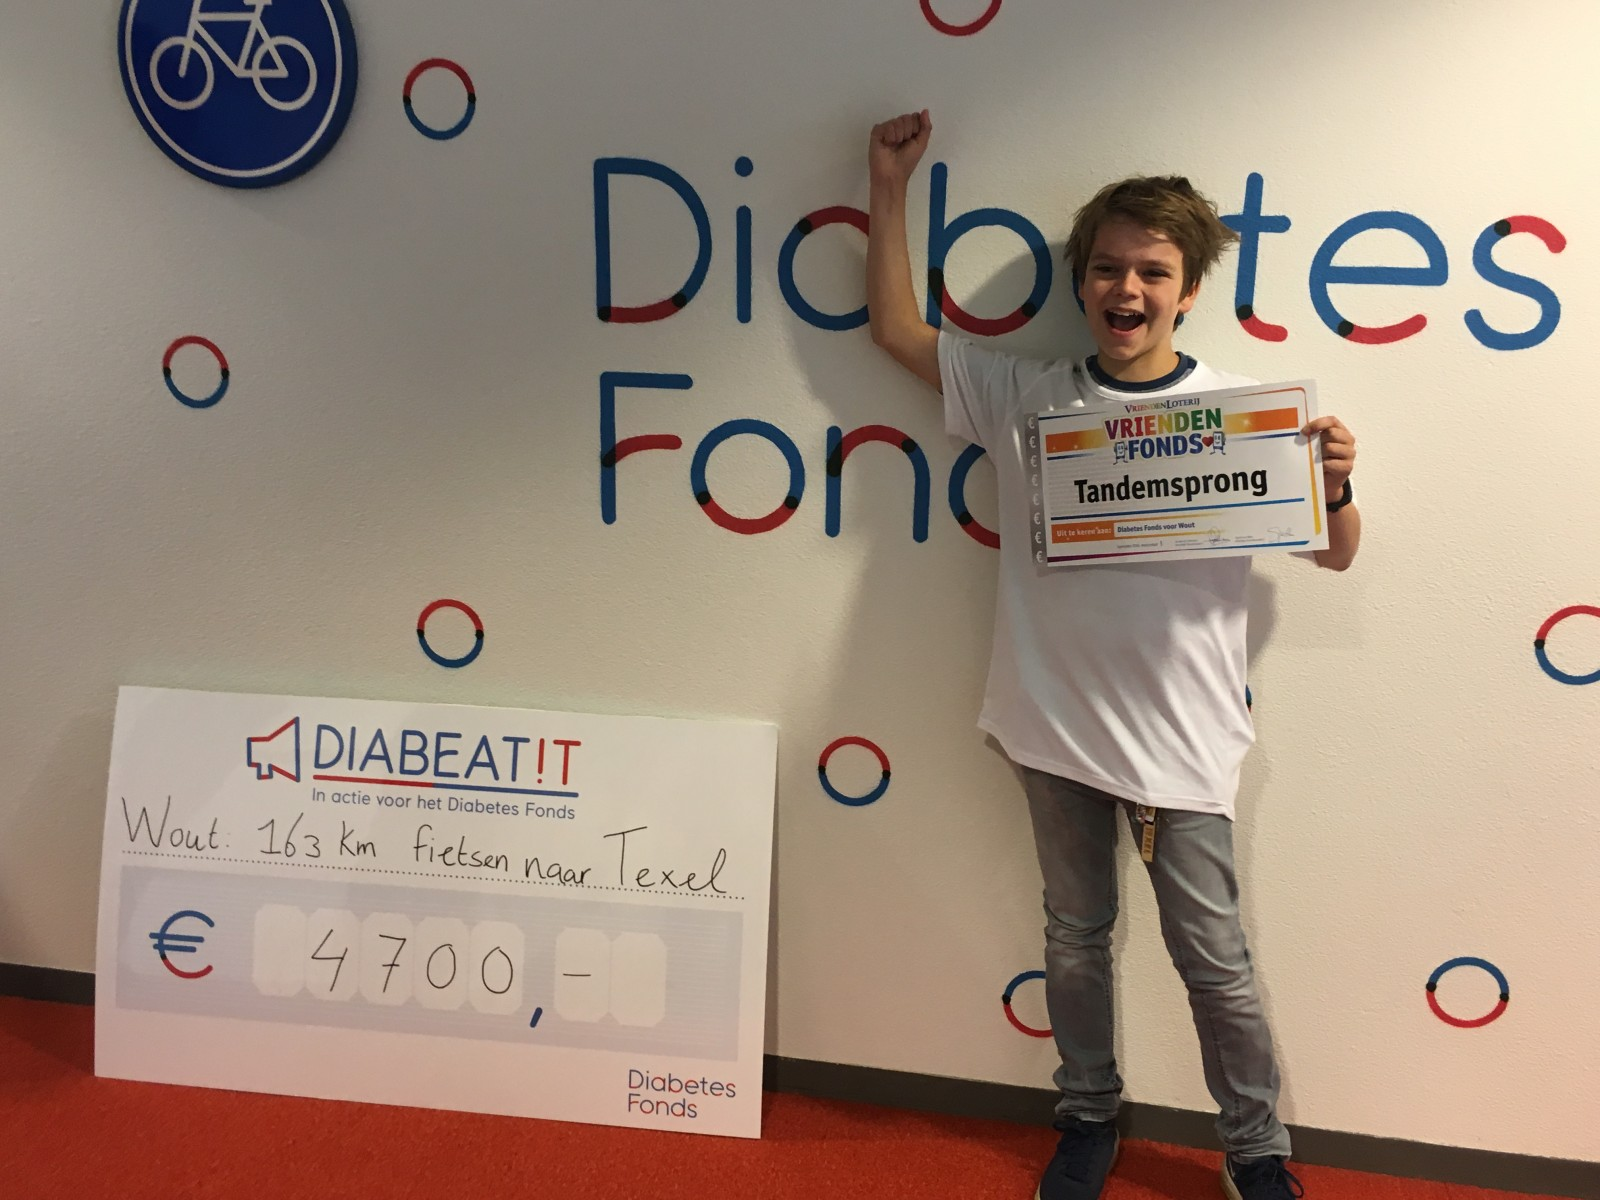 Wout met de VriendenFonds-cheque en sponsorcheque van Diabetes Fonds